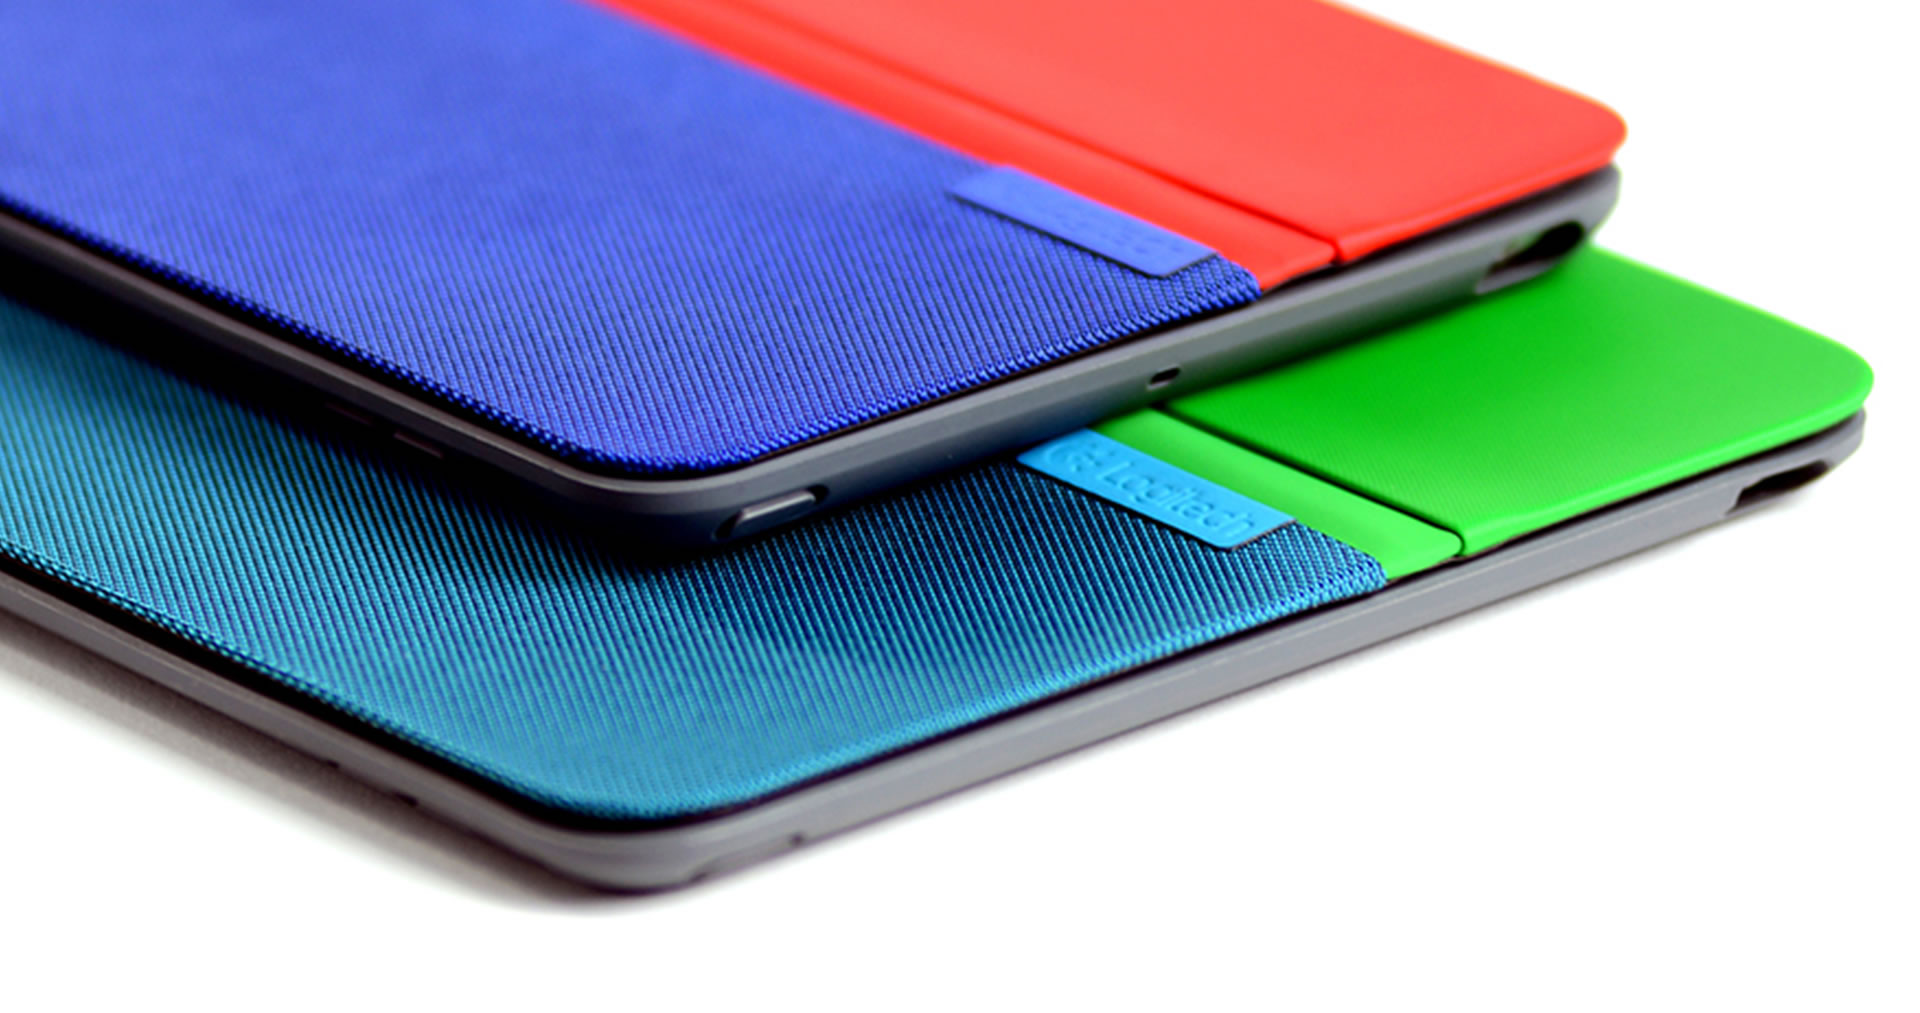 Two Logitech AnyAngle iPad cases materials detail